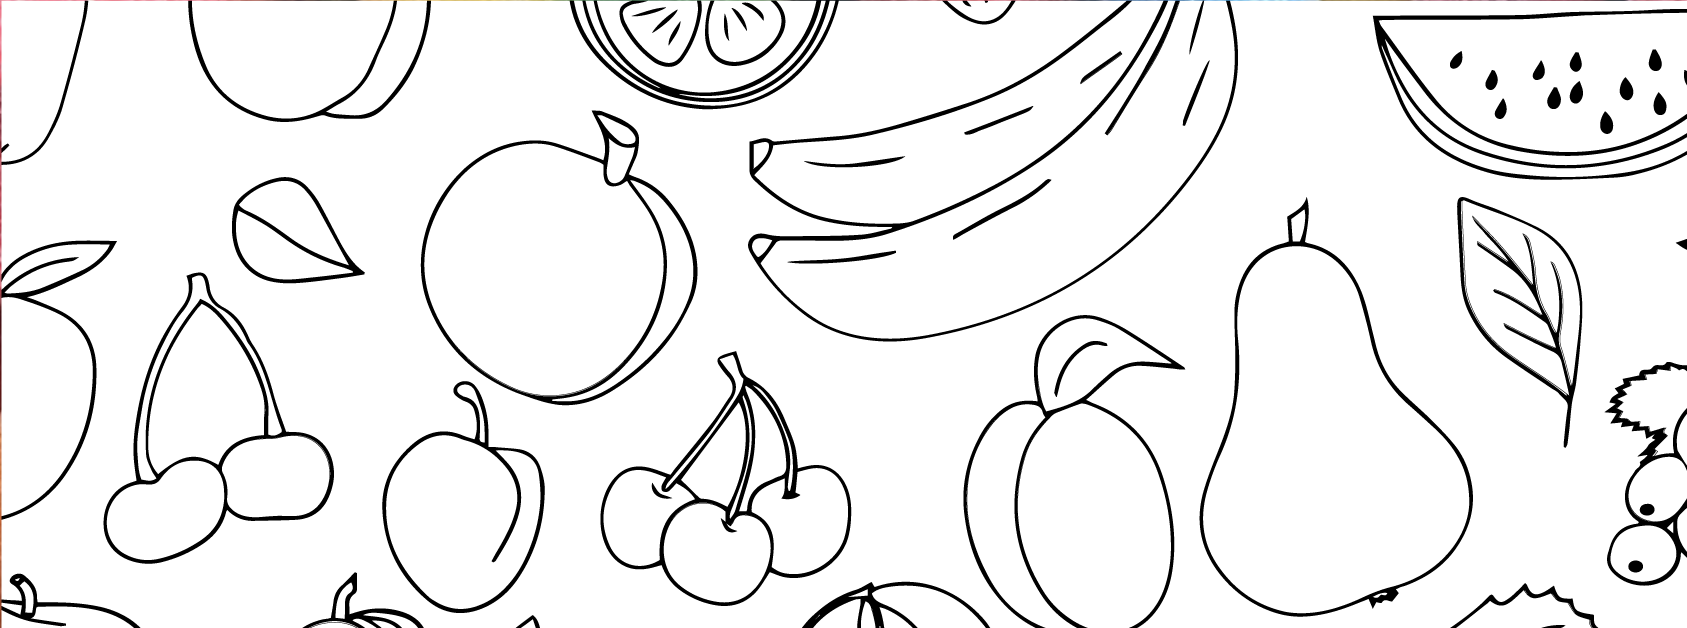 Fruit and Veggies Coloring Page